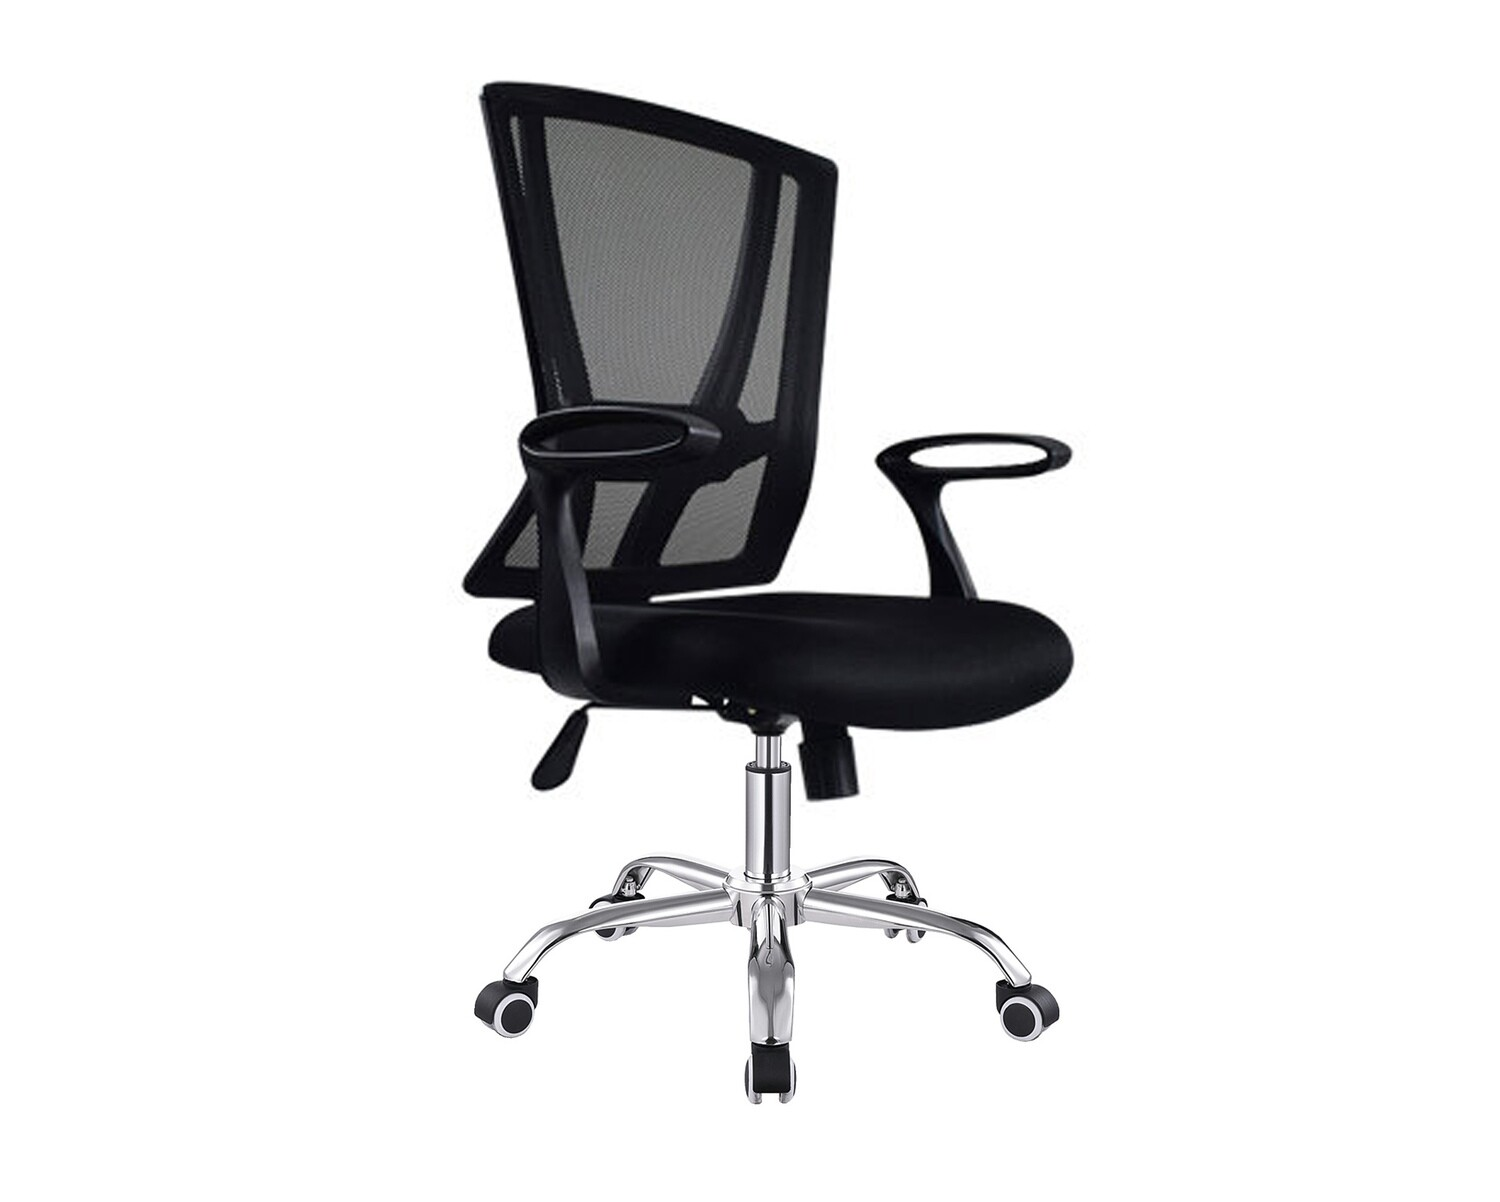 Ofix Deluxe-22 Mid Back Mesh Chair (Black)